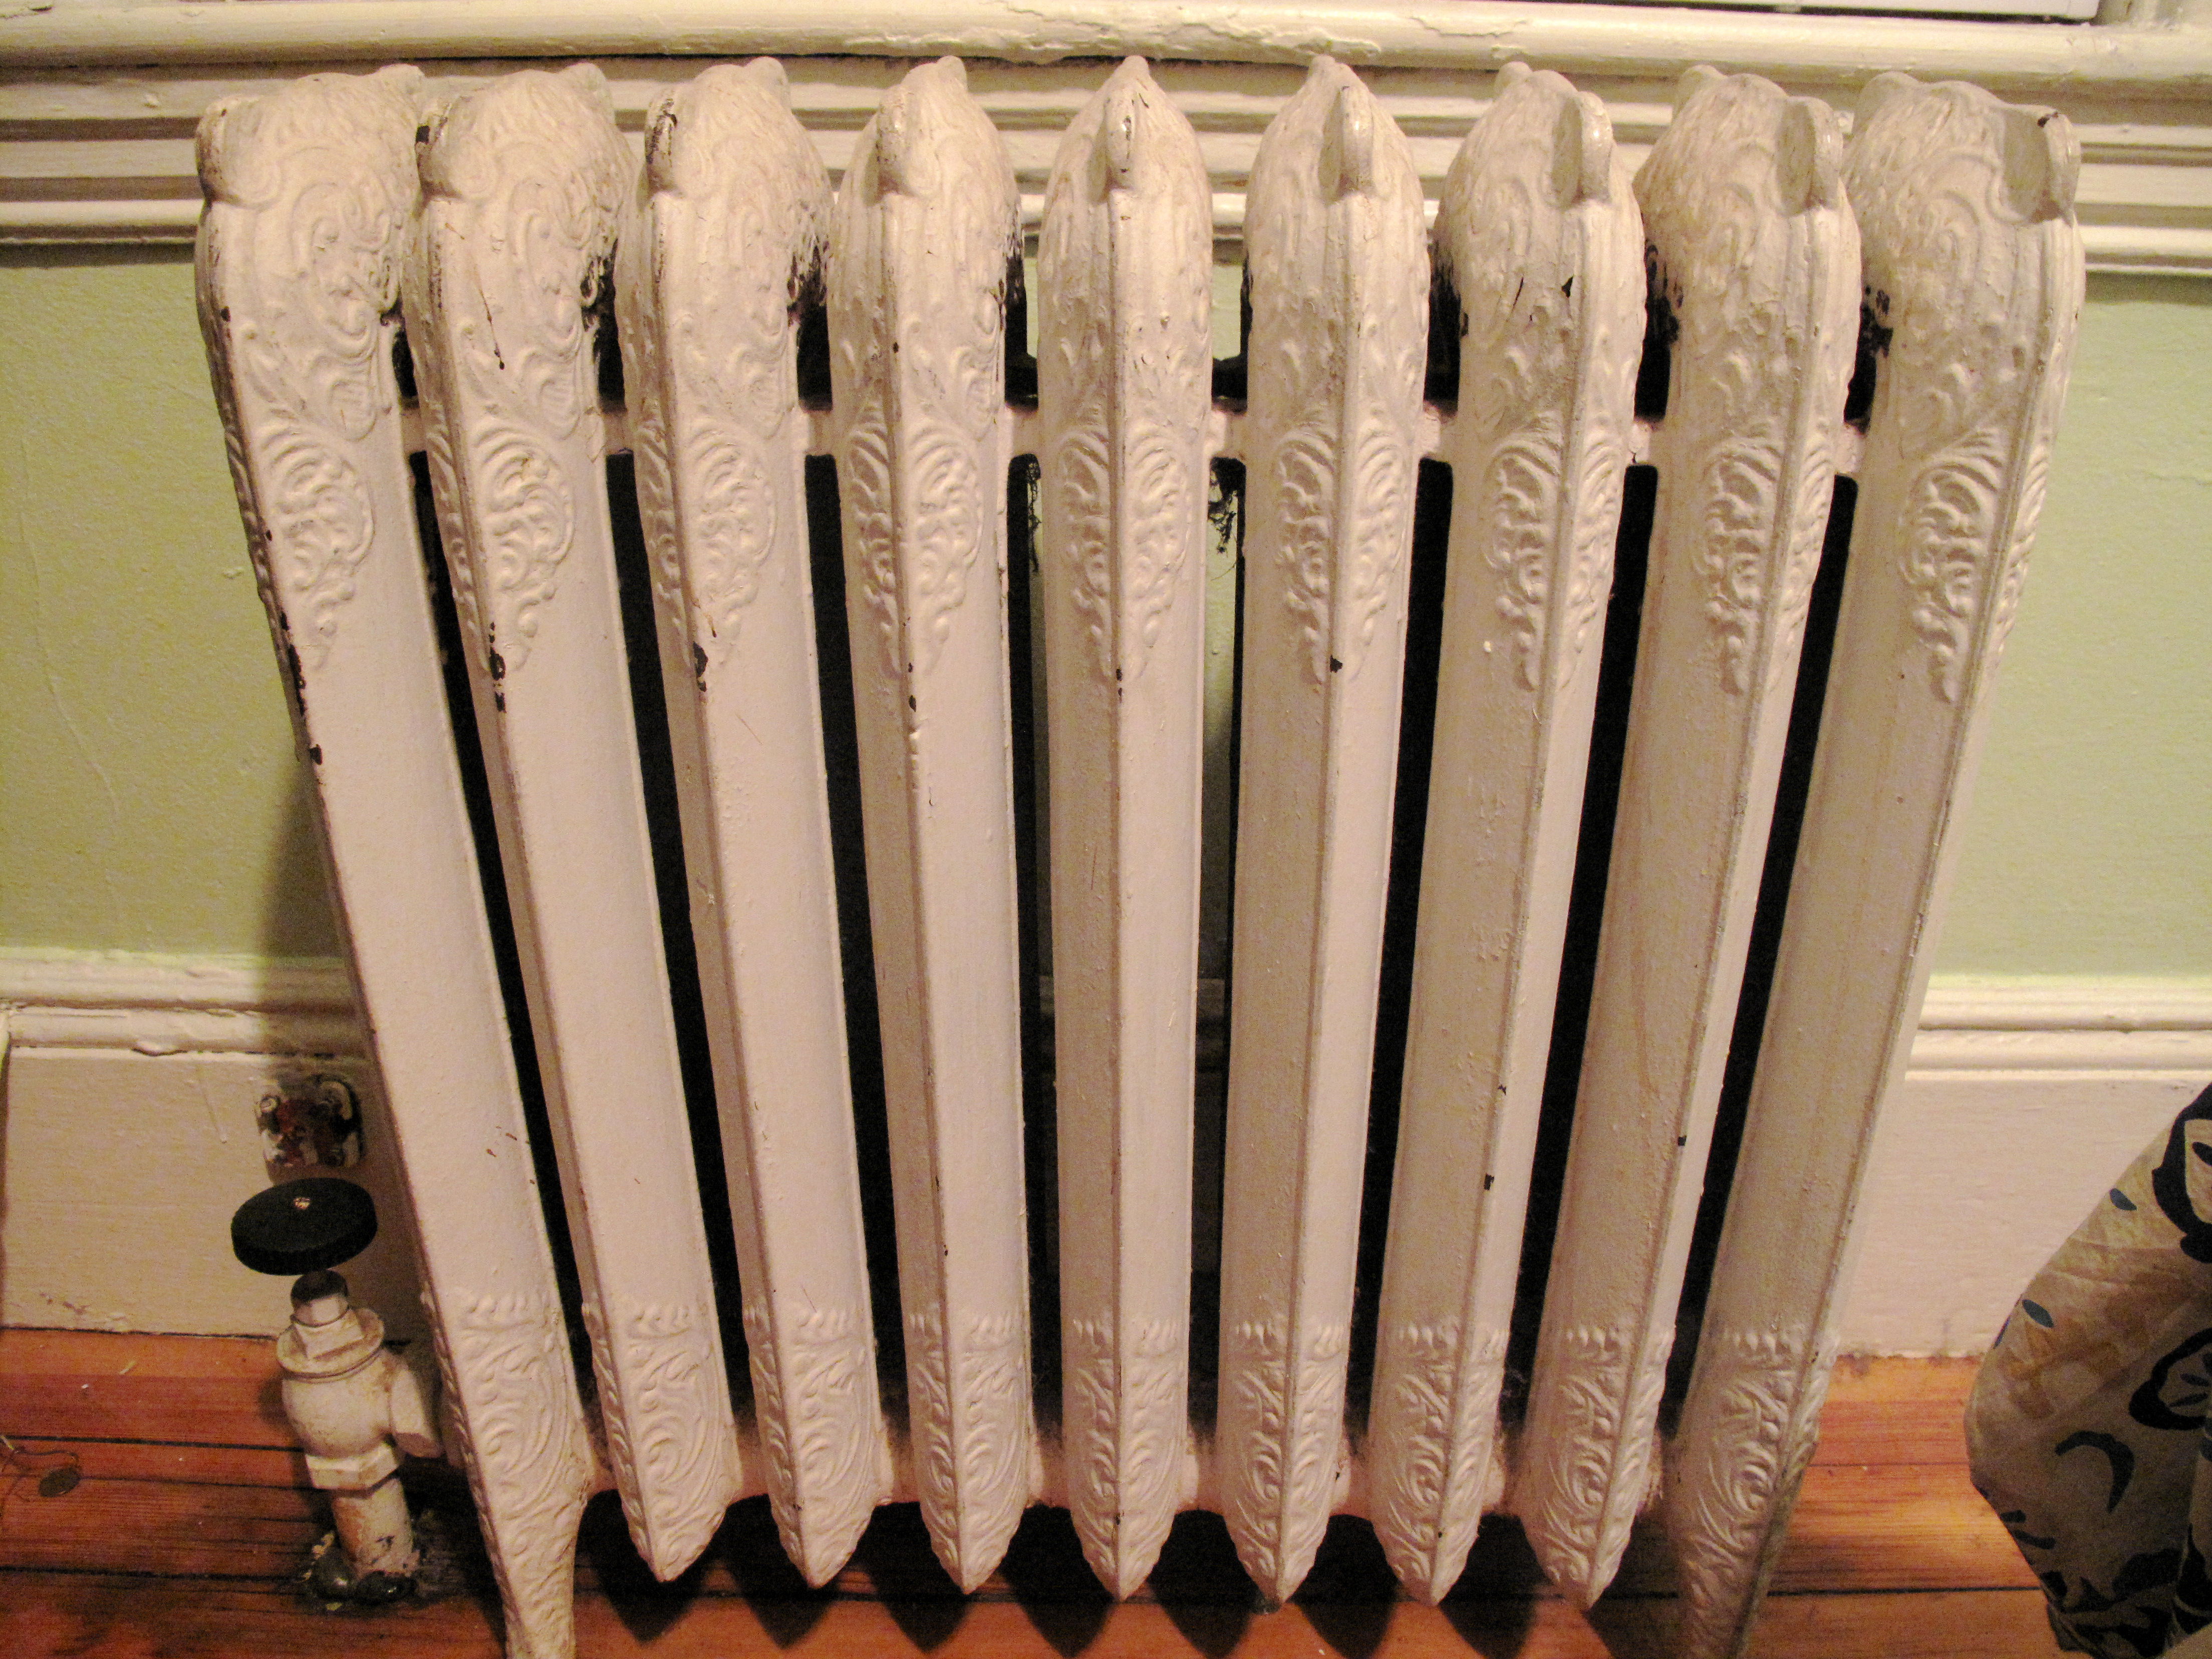 Home Heating using paraffin Inverter heaters Old fashioned radiator style heaters